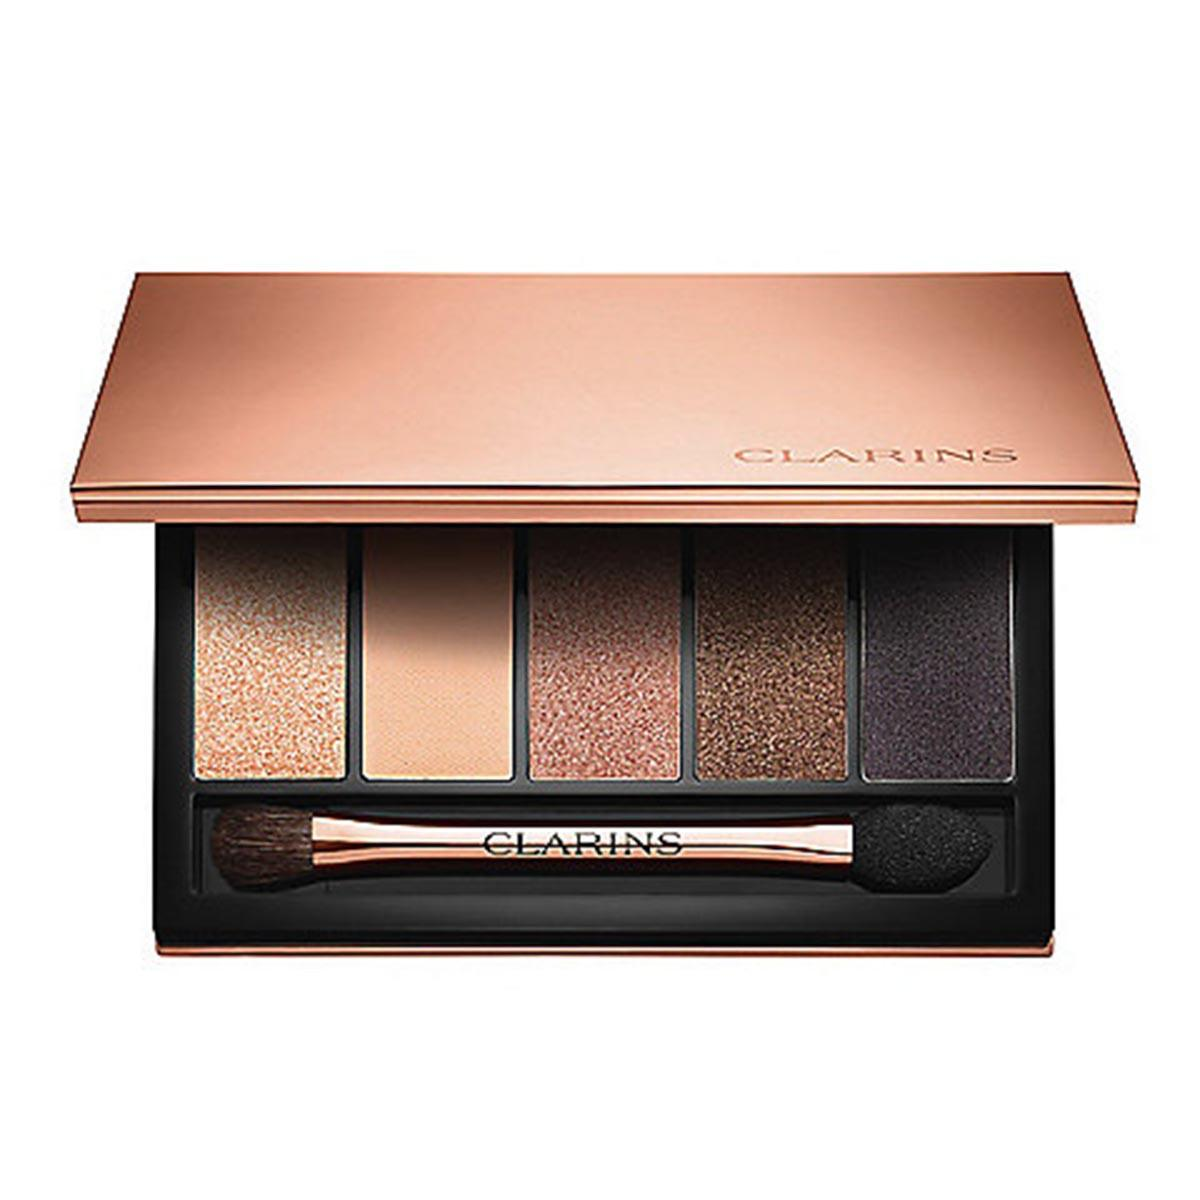 Clarins Five Colour Eye Palette 03 Natural Glow